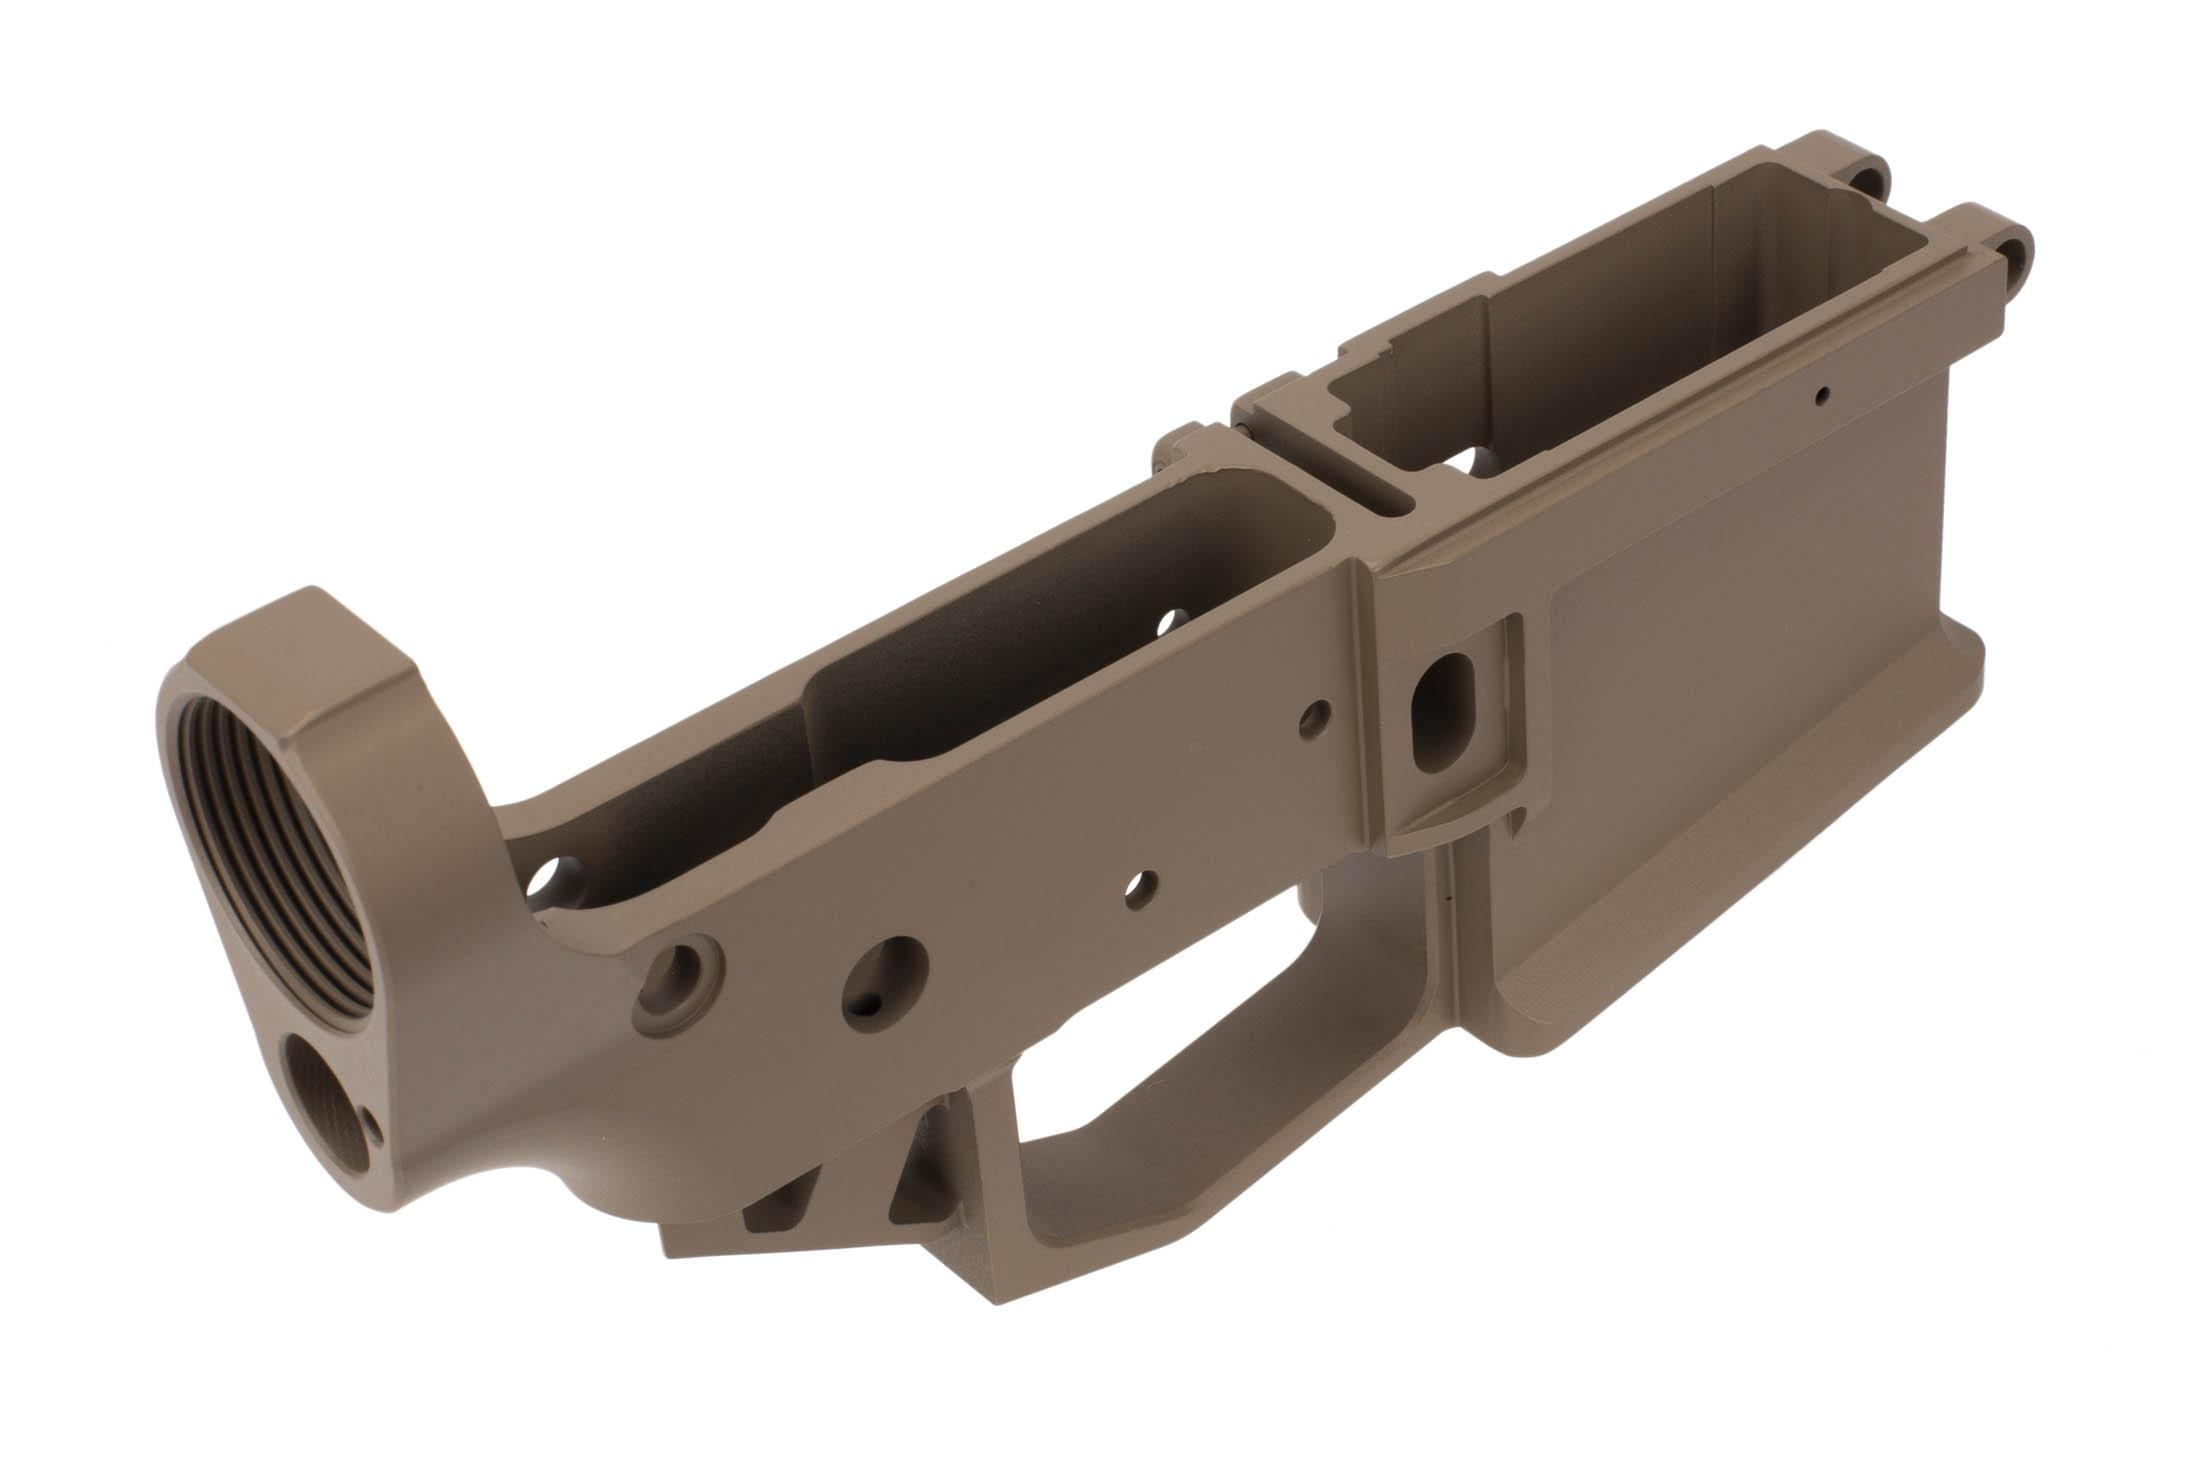 Rise Armament STRIKER flat dark earth Cerakoted AR-15 lower receiver accepts MIL-SPEC components